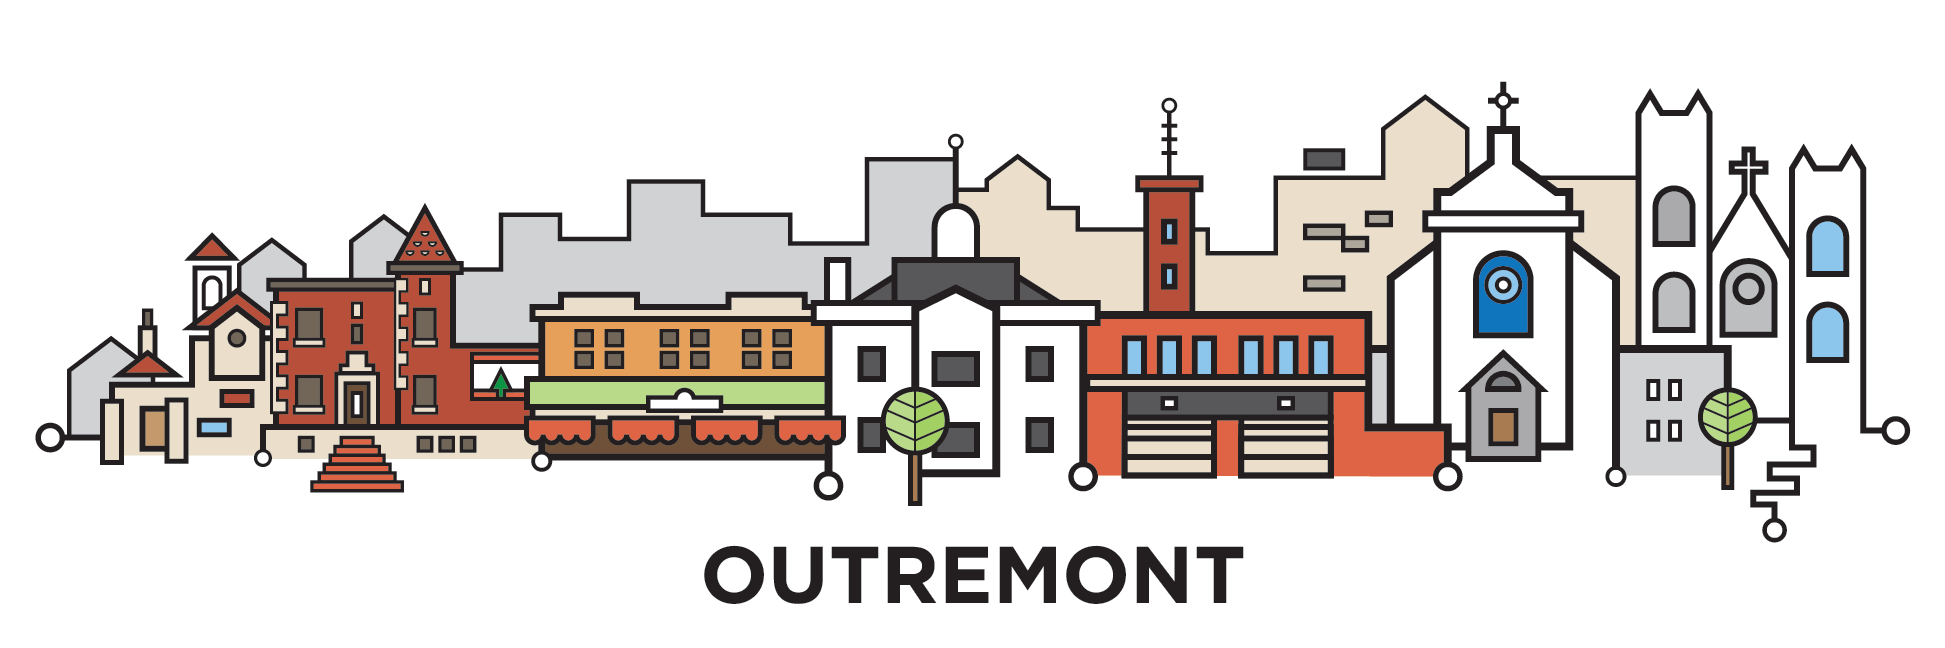 mtl-outremont-cityline-illustration-by-loogart